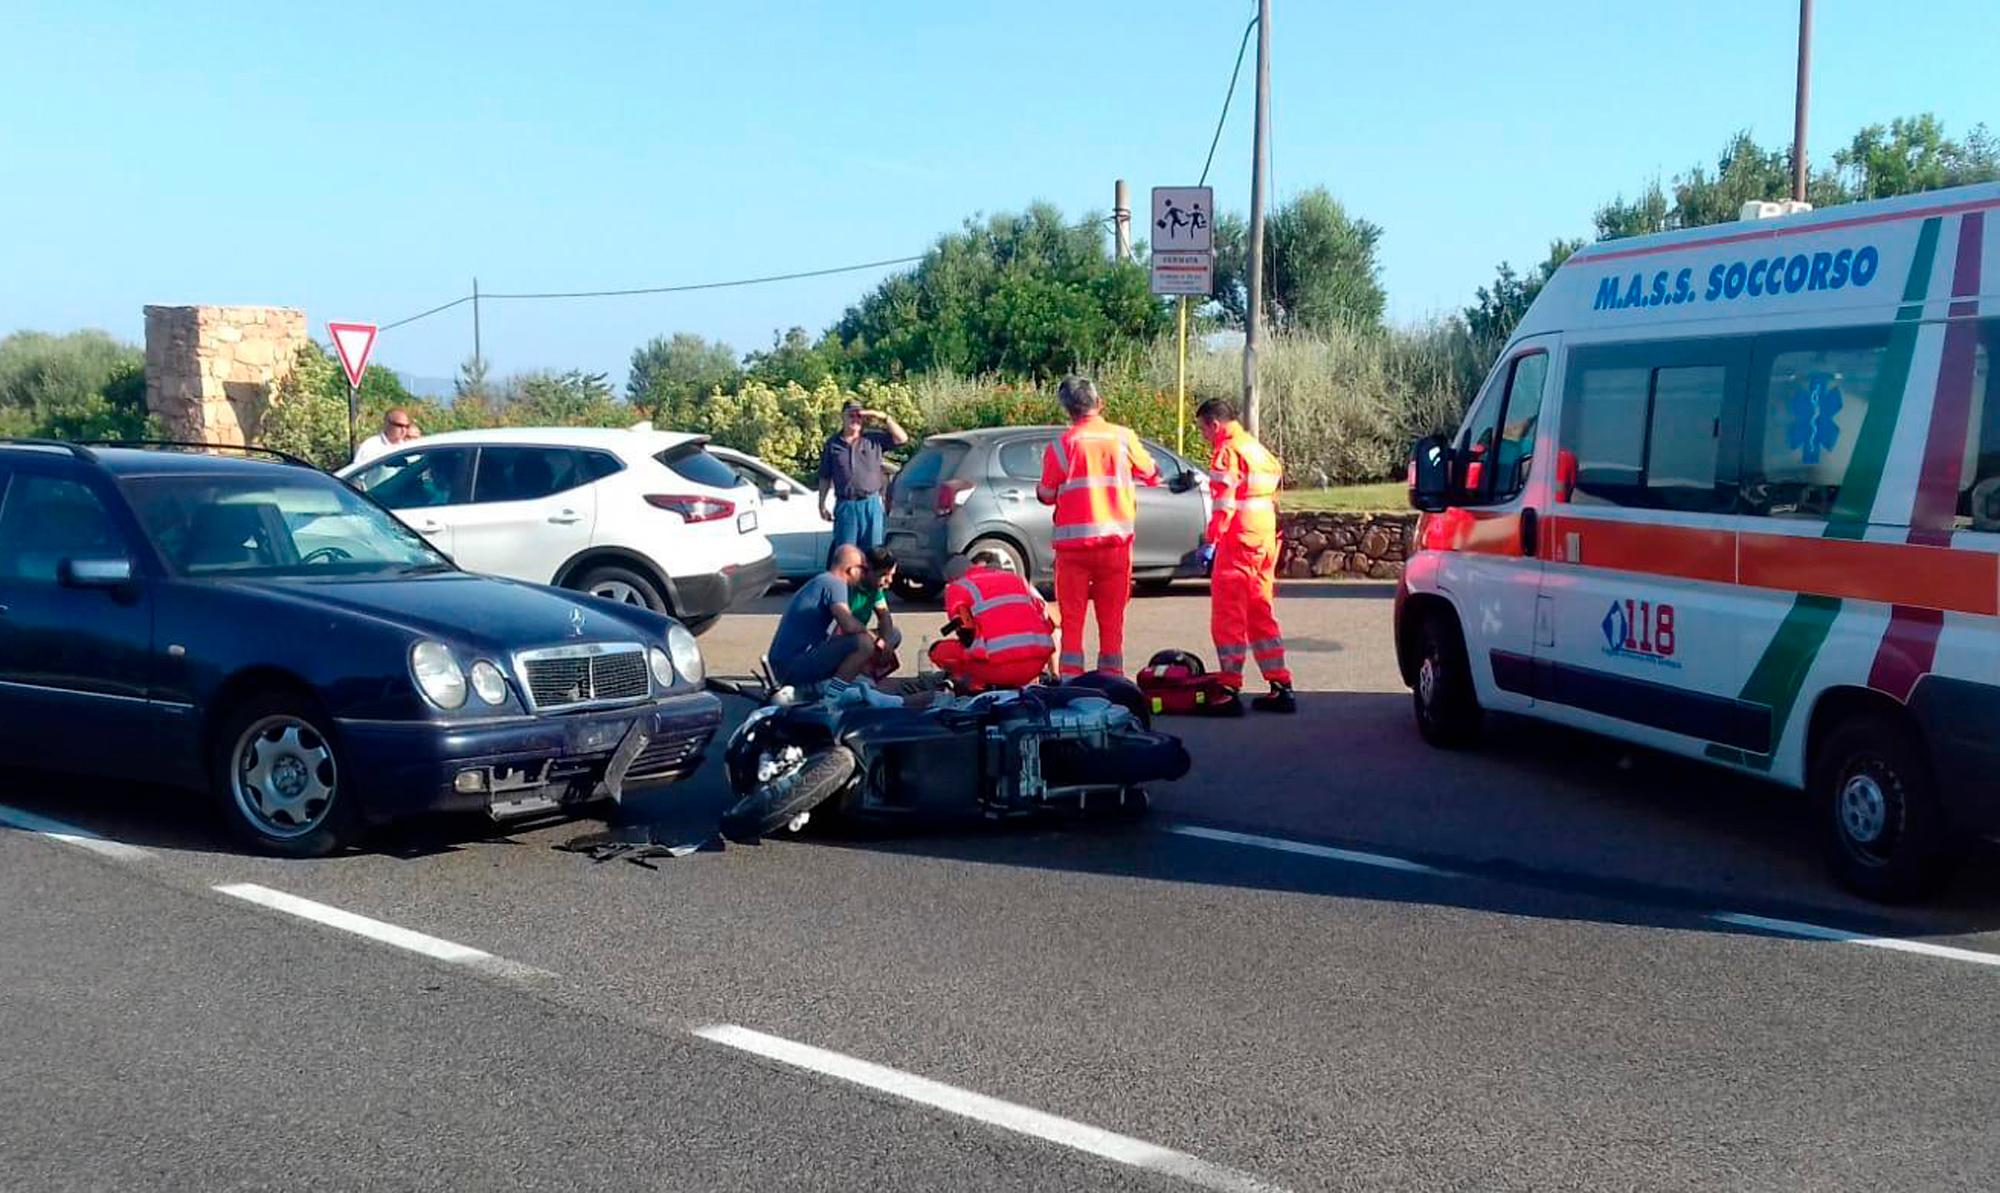 "Ambulance personnel tend to a man lying on the ground, later identified as actor George Clooney, after being involved in a scooter accident near Olbia, on the Sardinia island, Italy, Tuesday, July 10, 2018. Actor George Clooney was taken to the hospital in Sardinia on Tuesday and released after being involved in an accident while riding his motor scooter, hospital officials said. ""He is recovering at his home and will be fine,"" spokesman Stan Rosenfield told The Associated Press in an email. The John Paul II hospital in Olbia confirmed Clooney had been treated and released after Tuesday's accident. Local media that had gathered at the hospital said Clooney left in a van through a side exit. (AP Photo/Mario Chironi)"